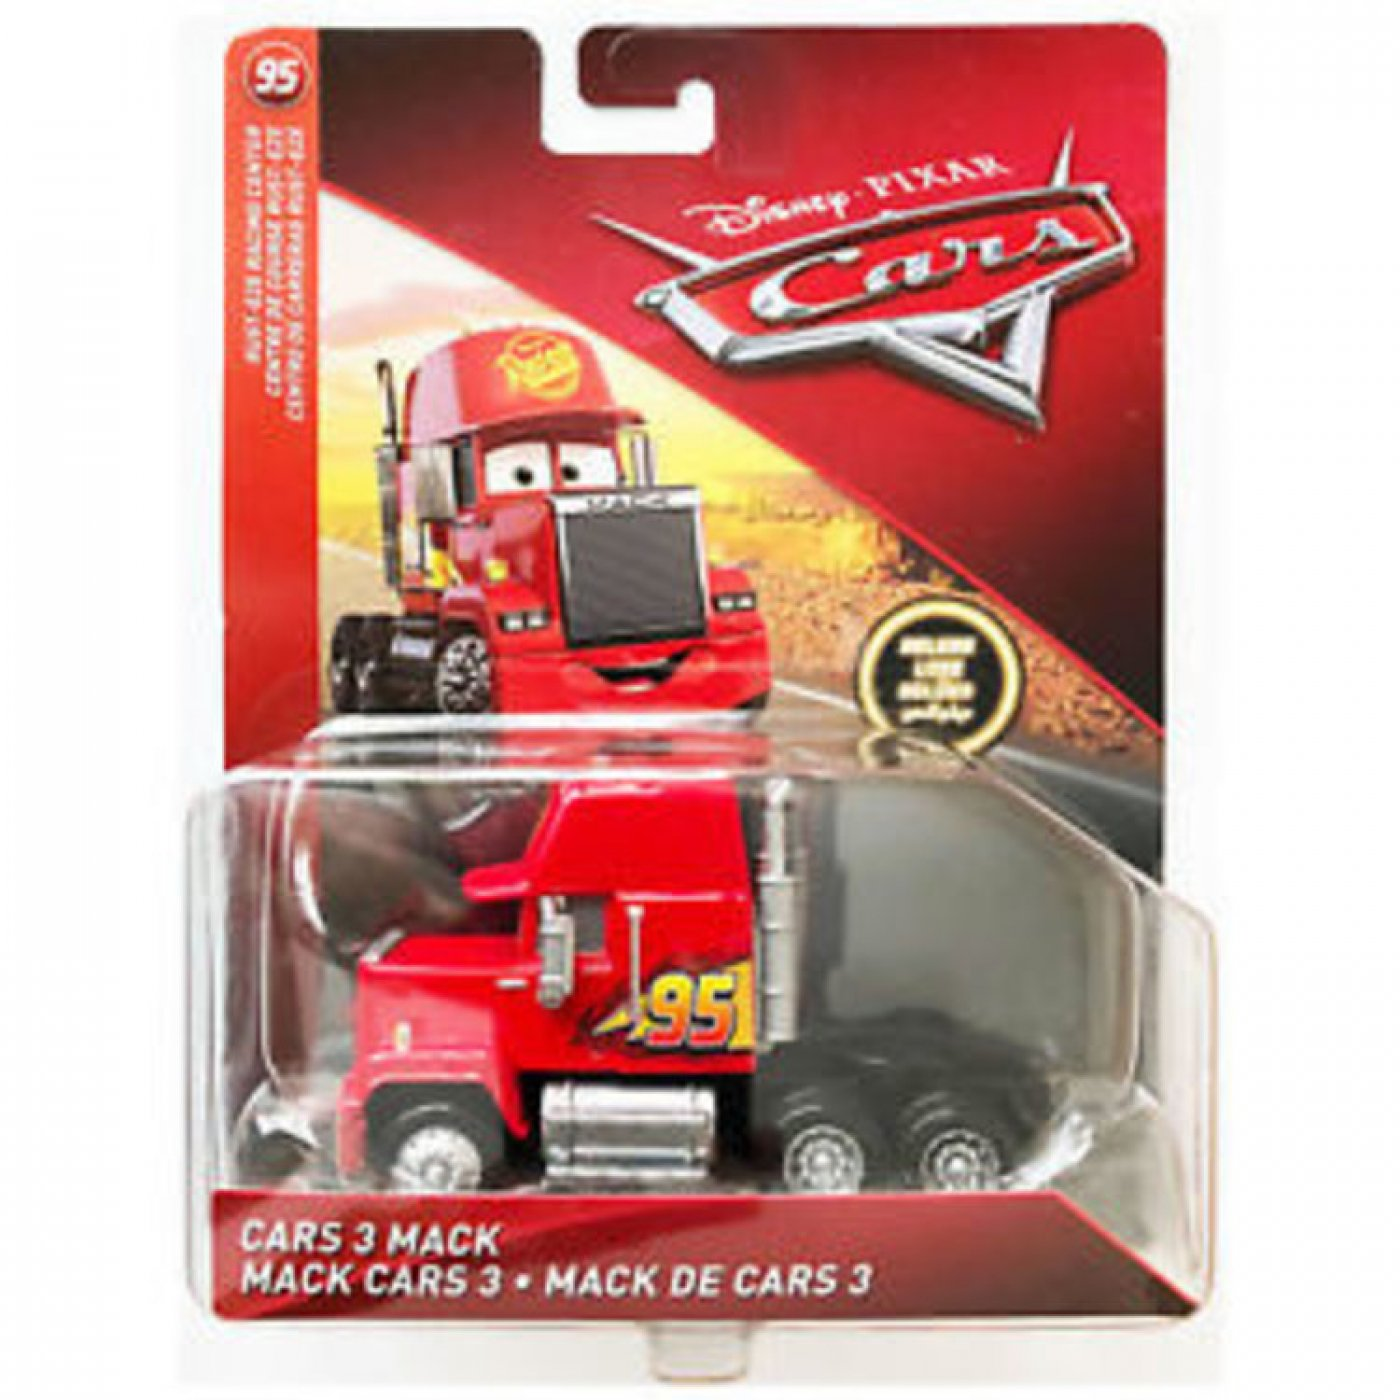 Mack de Cars 3 - Version de Lujo